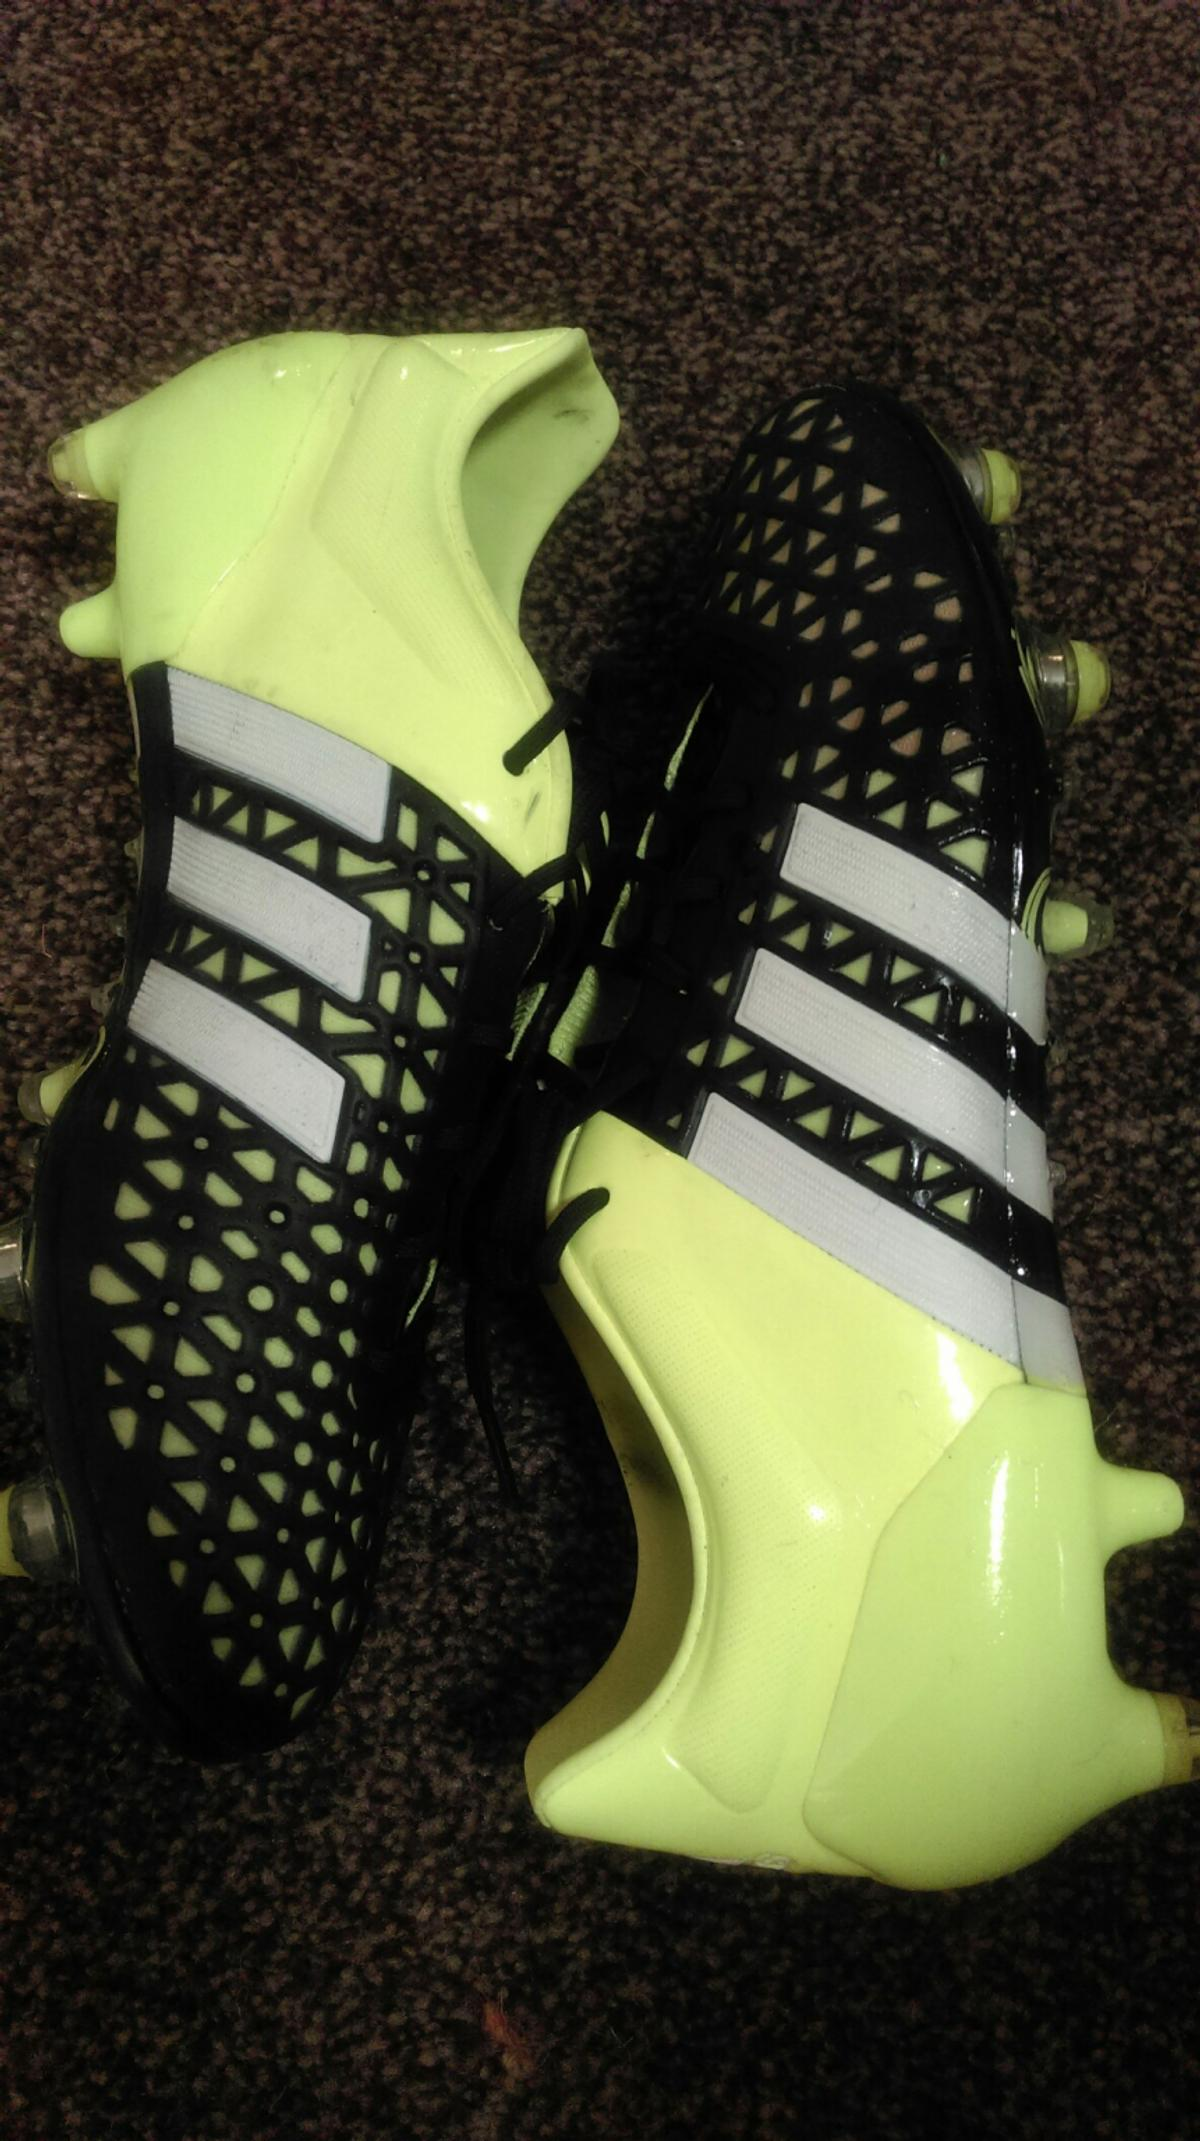 outlet store 73146 b6085 Adidas ACE 15.1 SG, football boots (size 6.5) in M21 ...